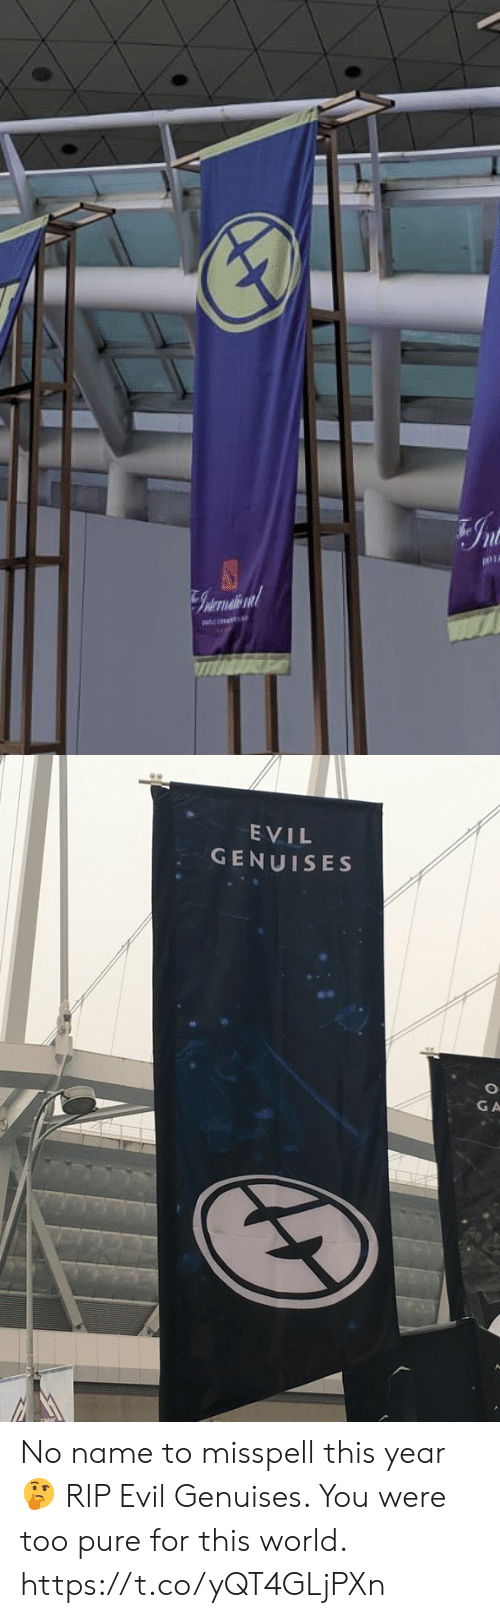 Memes, World, and Evil: IA   EVIL  GENUISES  GA No name to misspell this year 🤔  RIP Evil Genuises. You were too pure for this world. https://t.co/yQT4GLjPXn